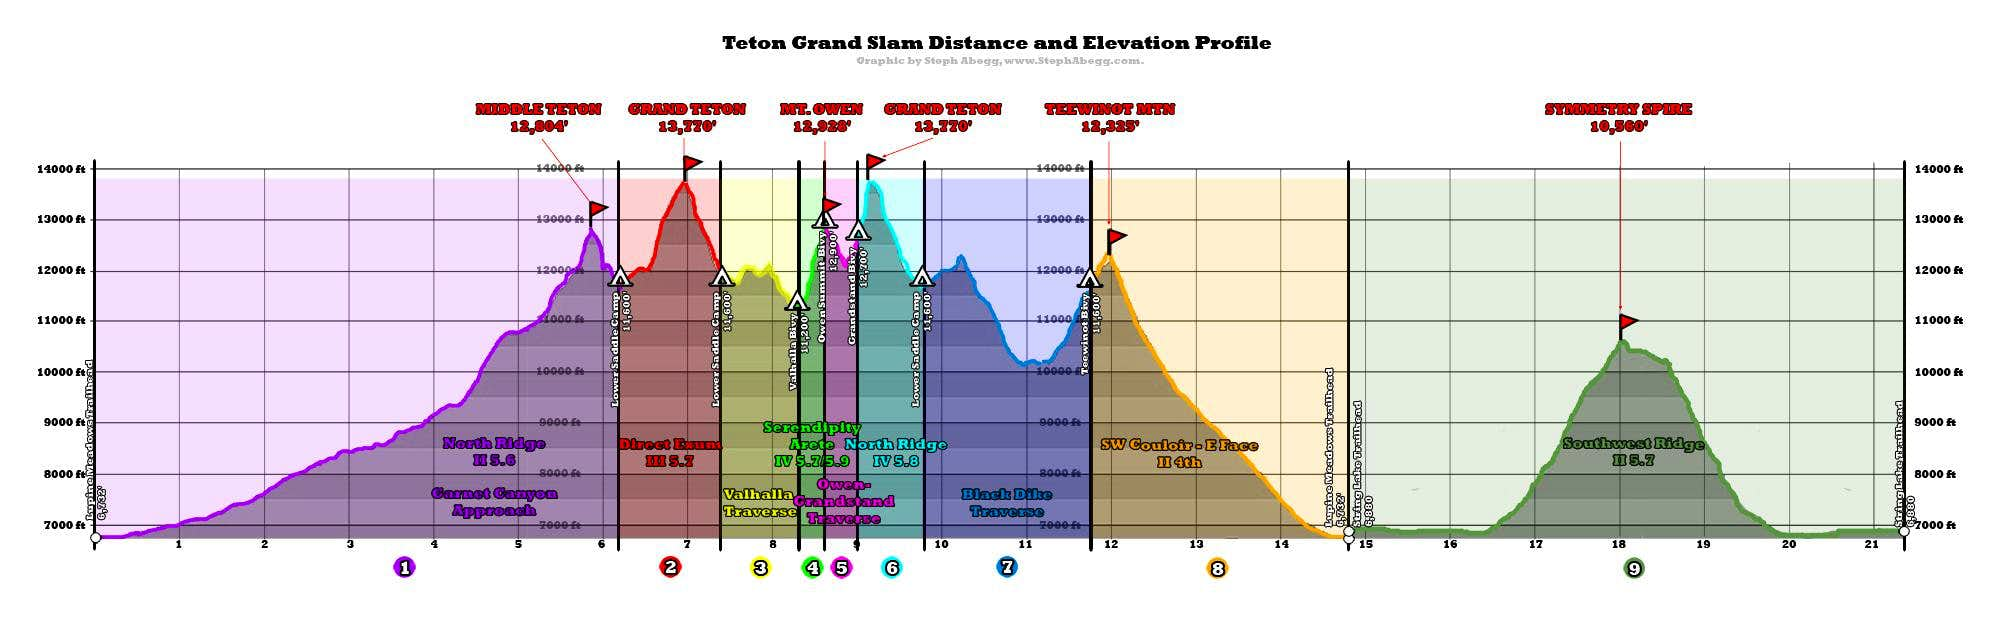 TETON GRAND SLAM: Middle Teton NR, Grand Teton Complete Exum, Mt. Owen Serendipity Arête, Grand Teton NR, Teewinot SW Couloir, Symmetry Spire SW Ridge